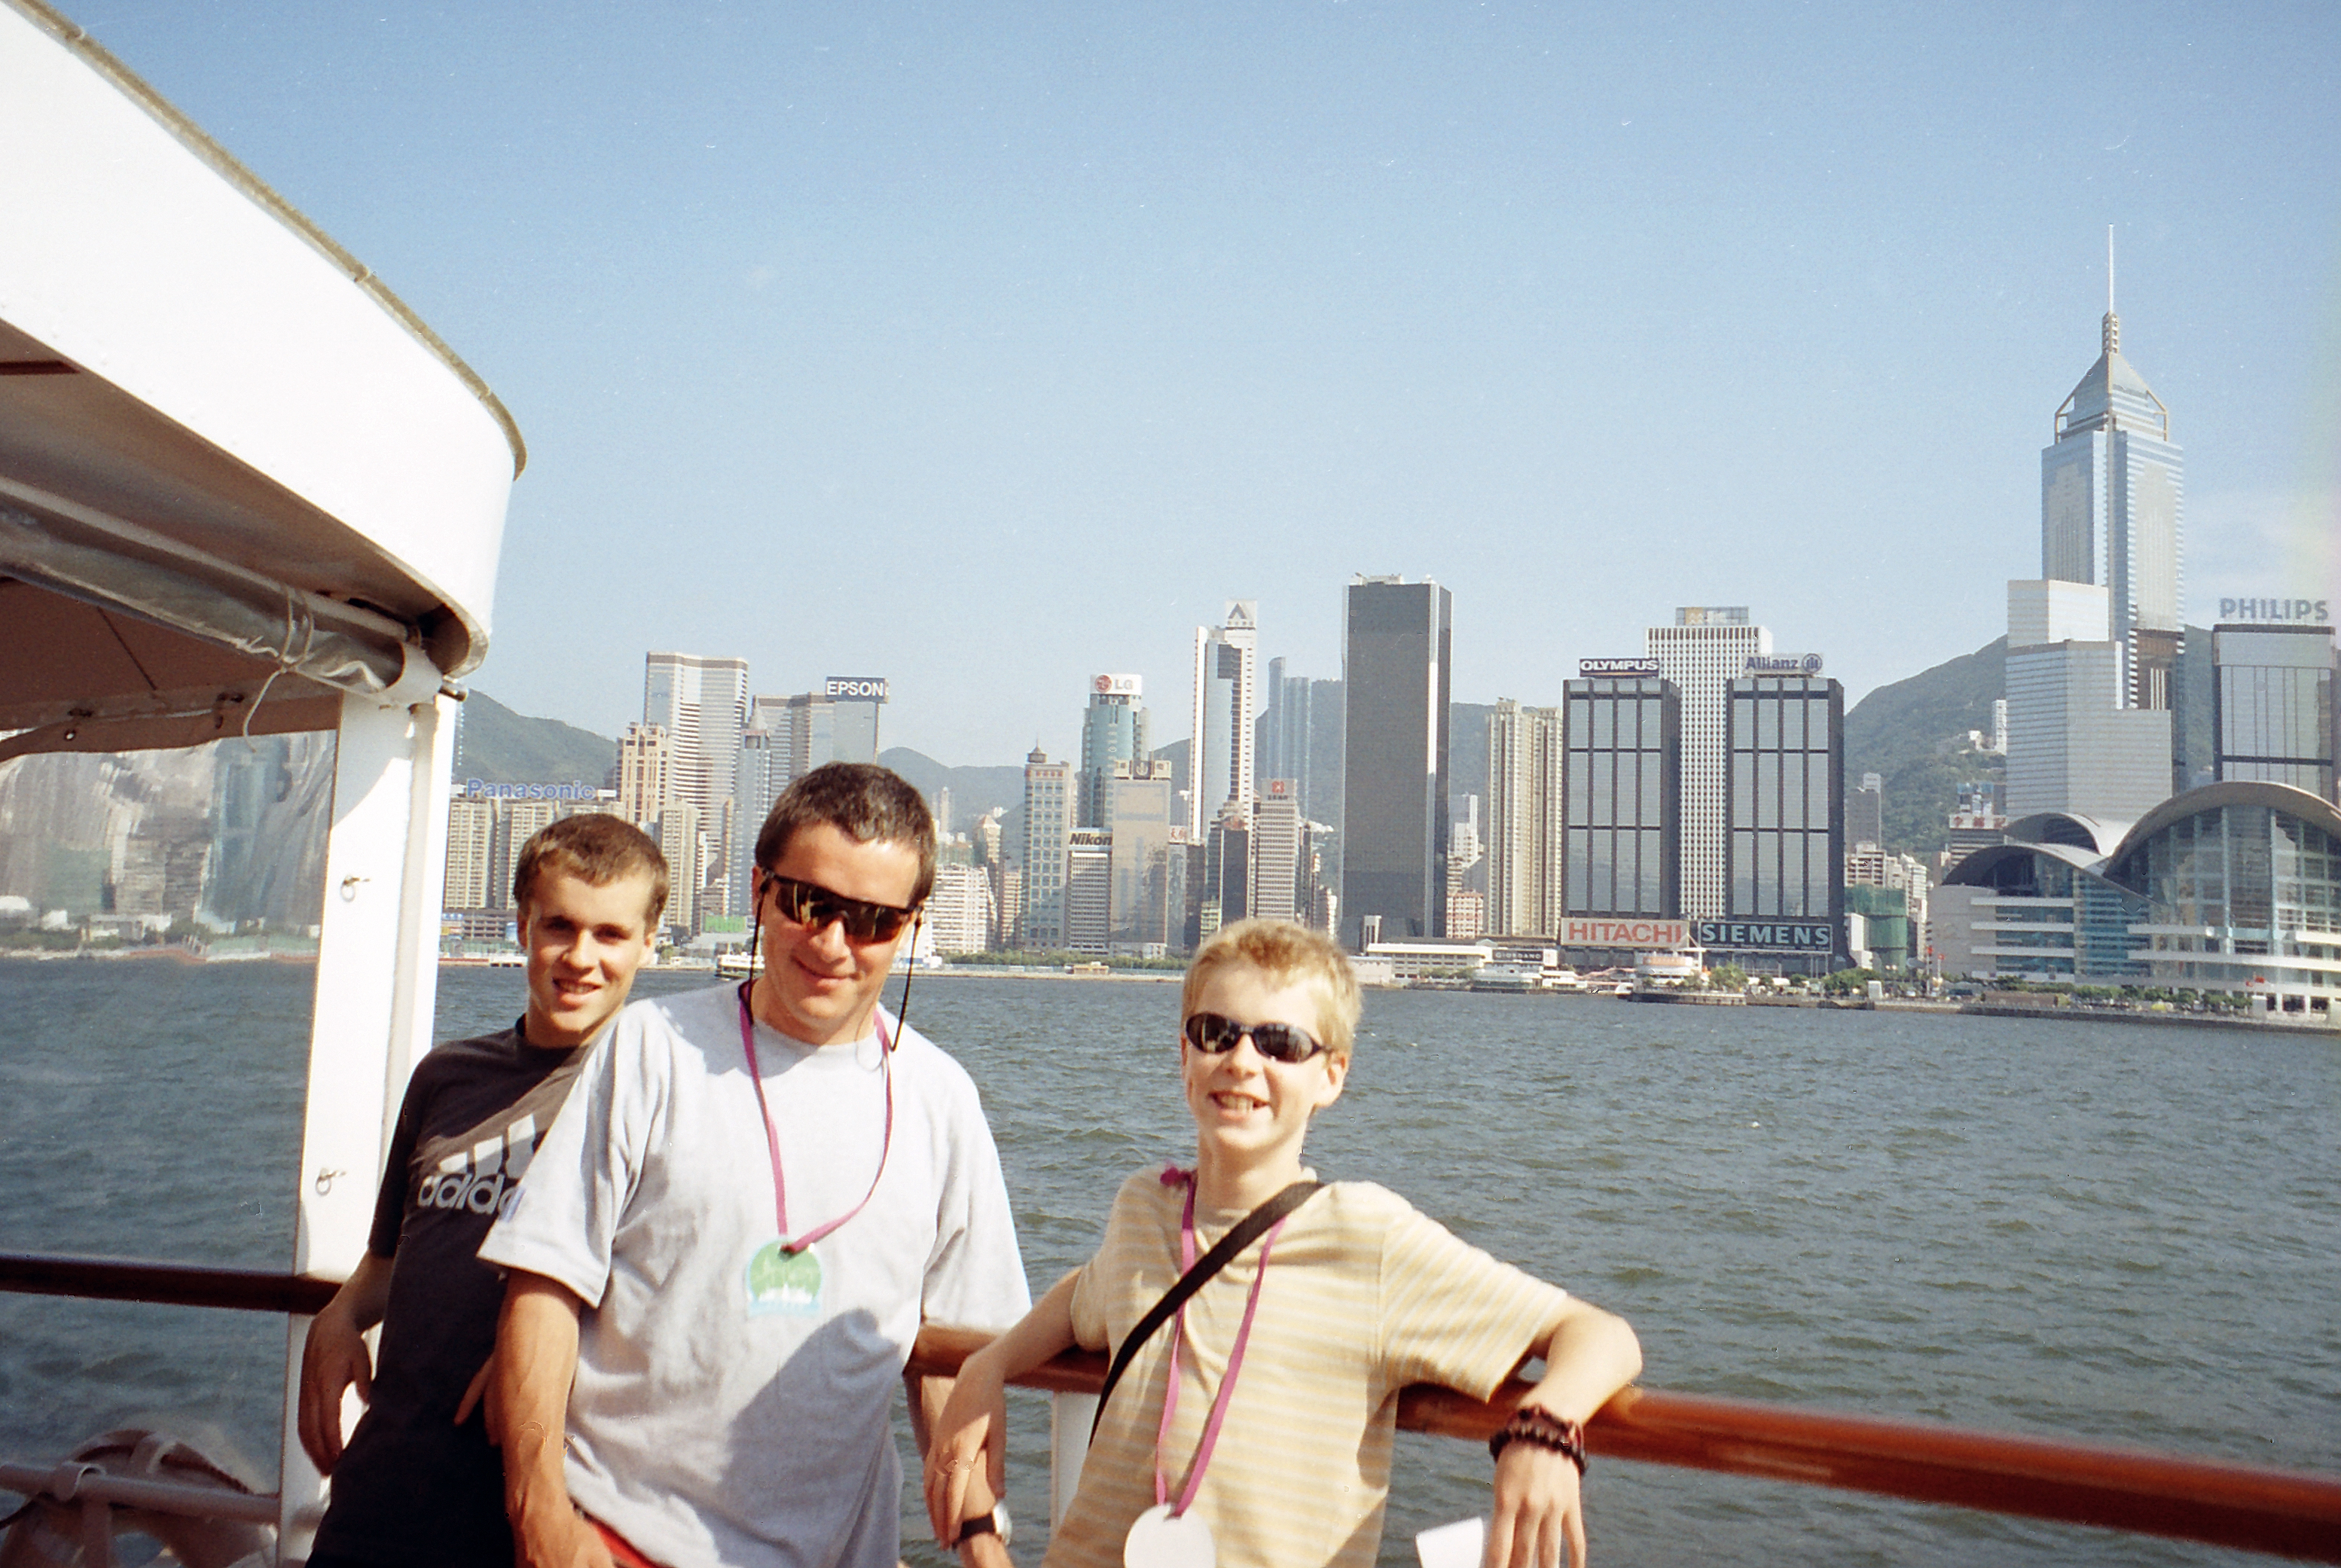 Maurice, Tom and Nic on boat, Hong Kong China.jpg